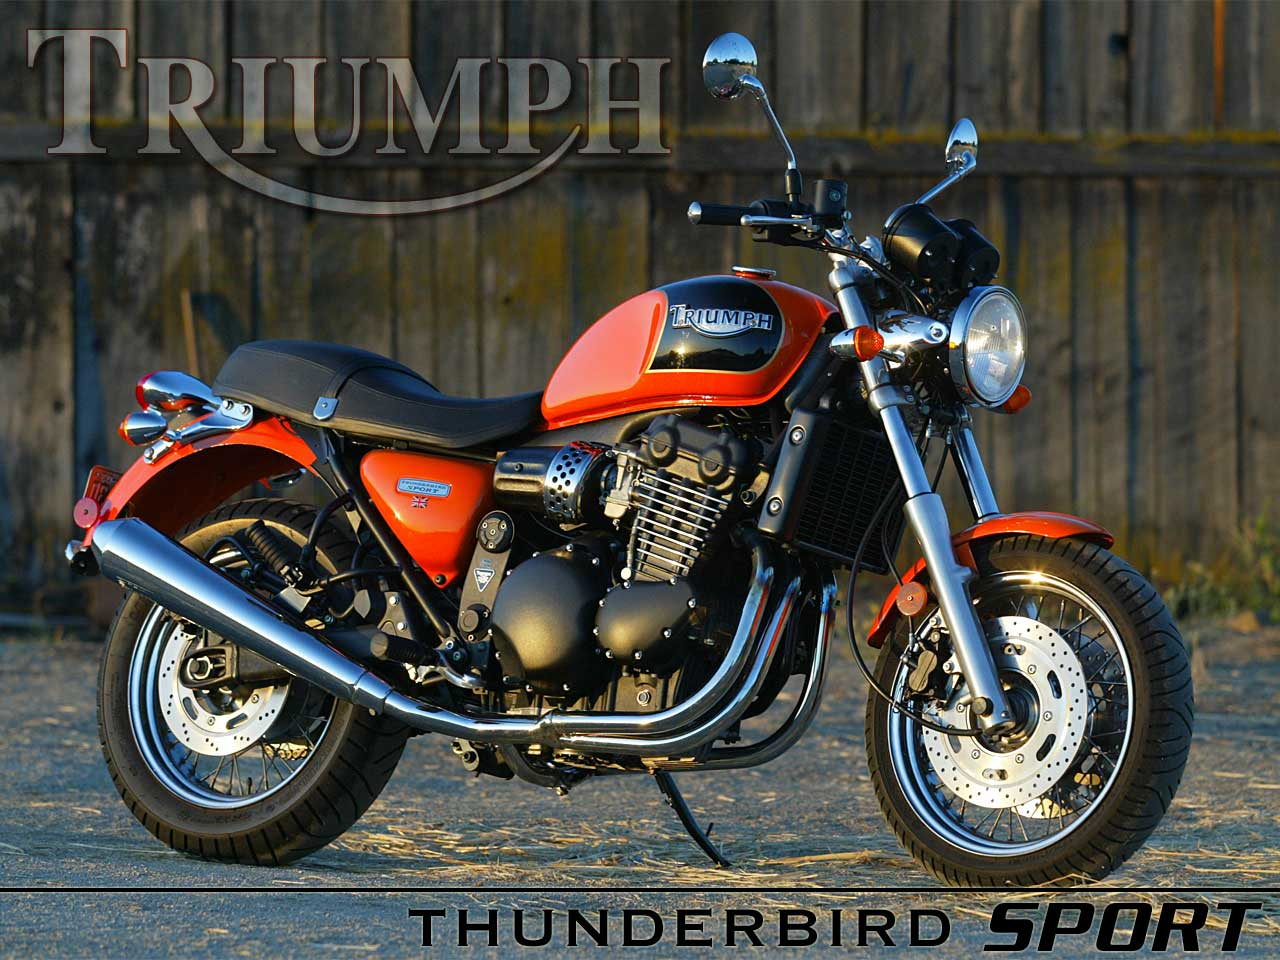 Triumph Legend TT 1999 images #159308